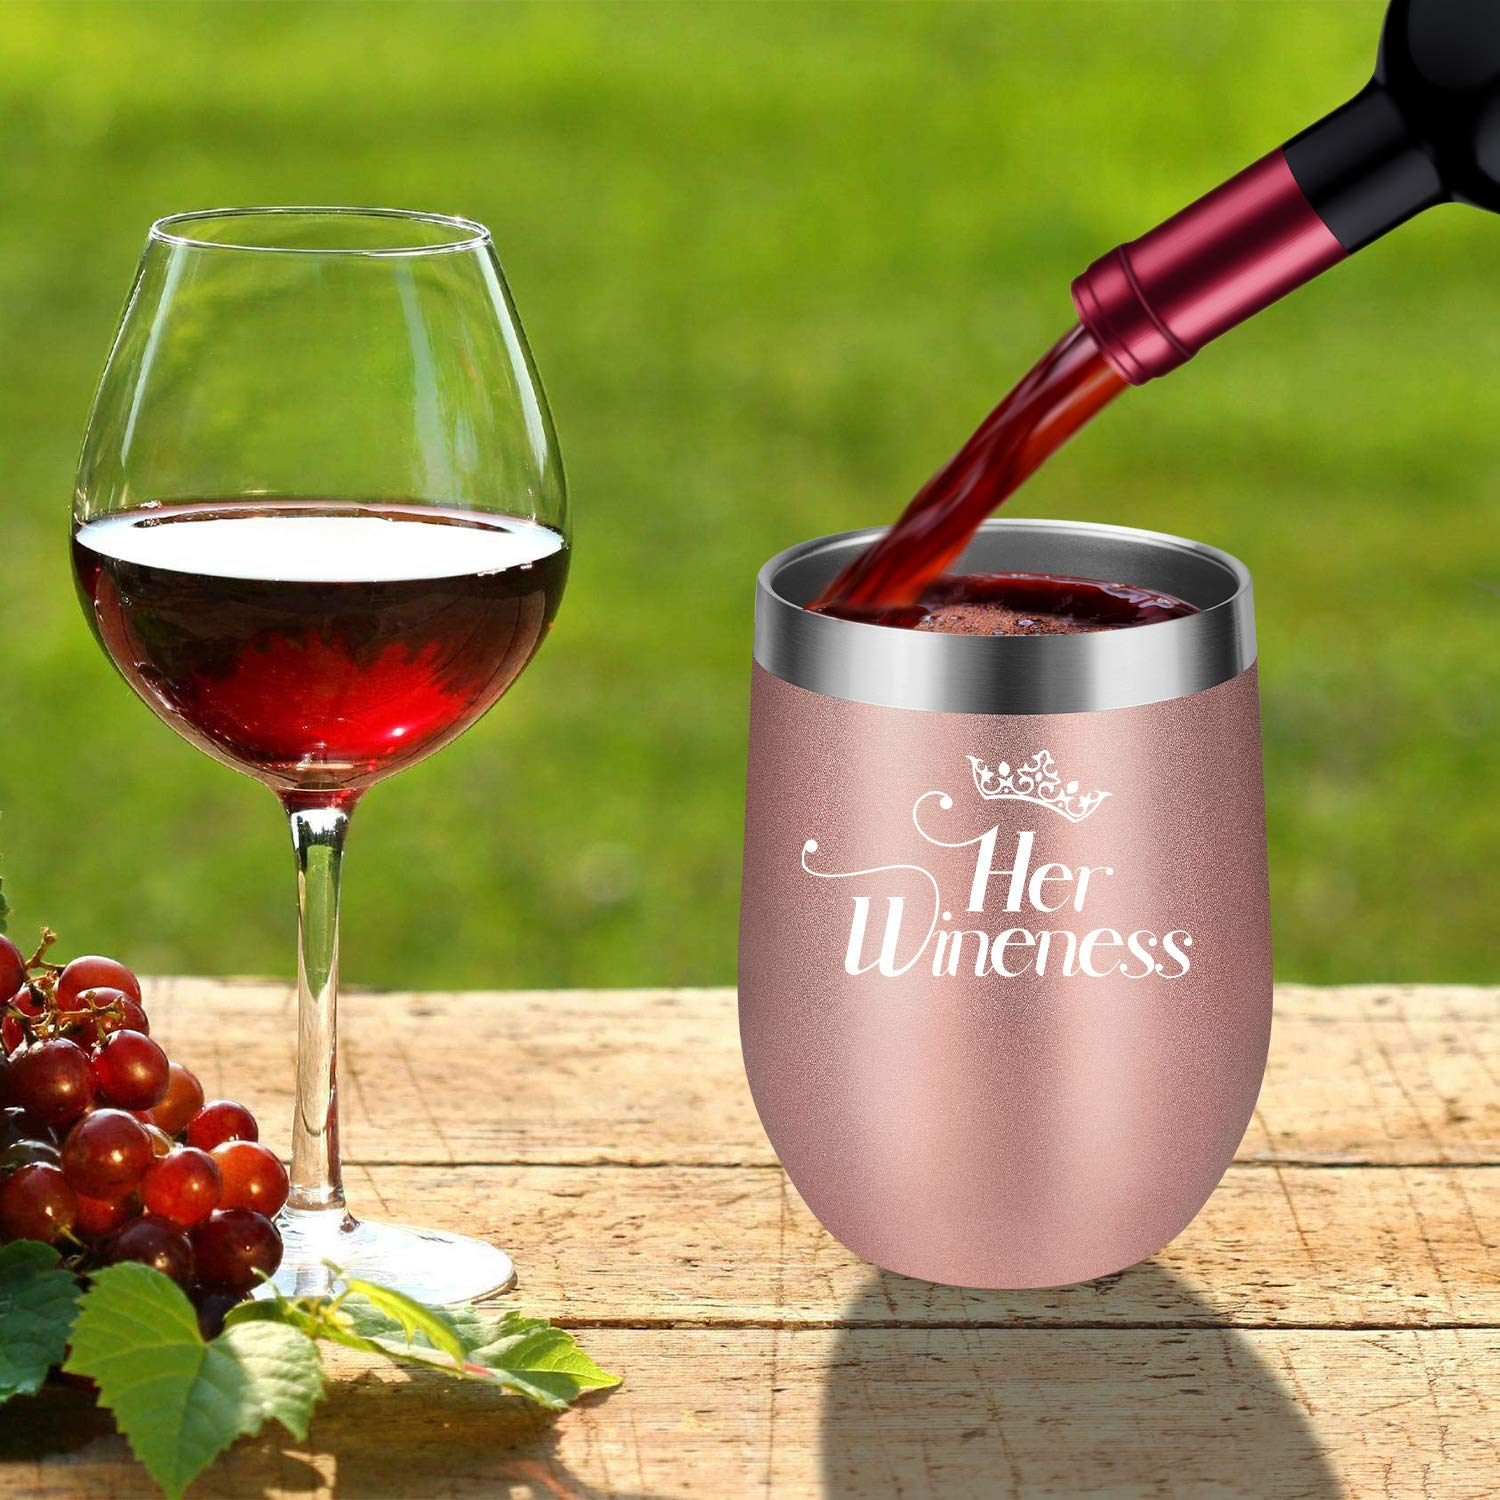 Stainless Steel Wine Tumbler Royal Wineness Gl With Lid Unbreakable Gift Bottle Openers